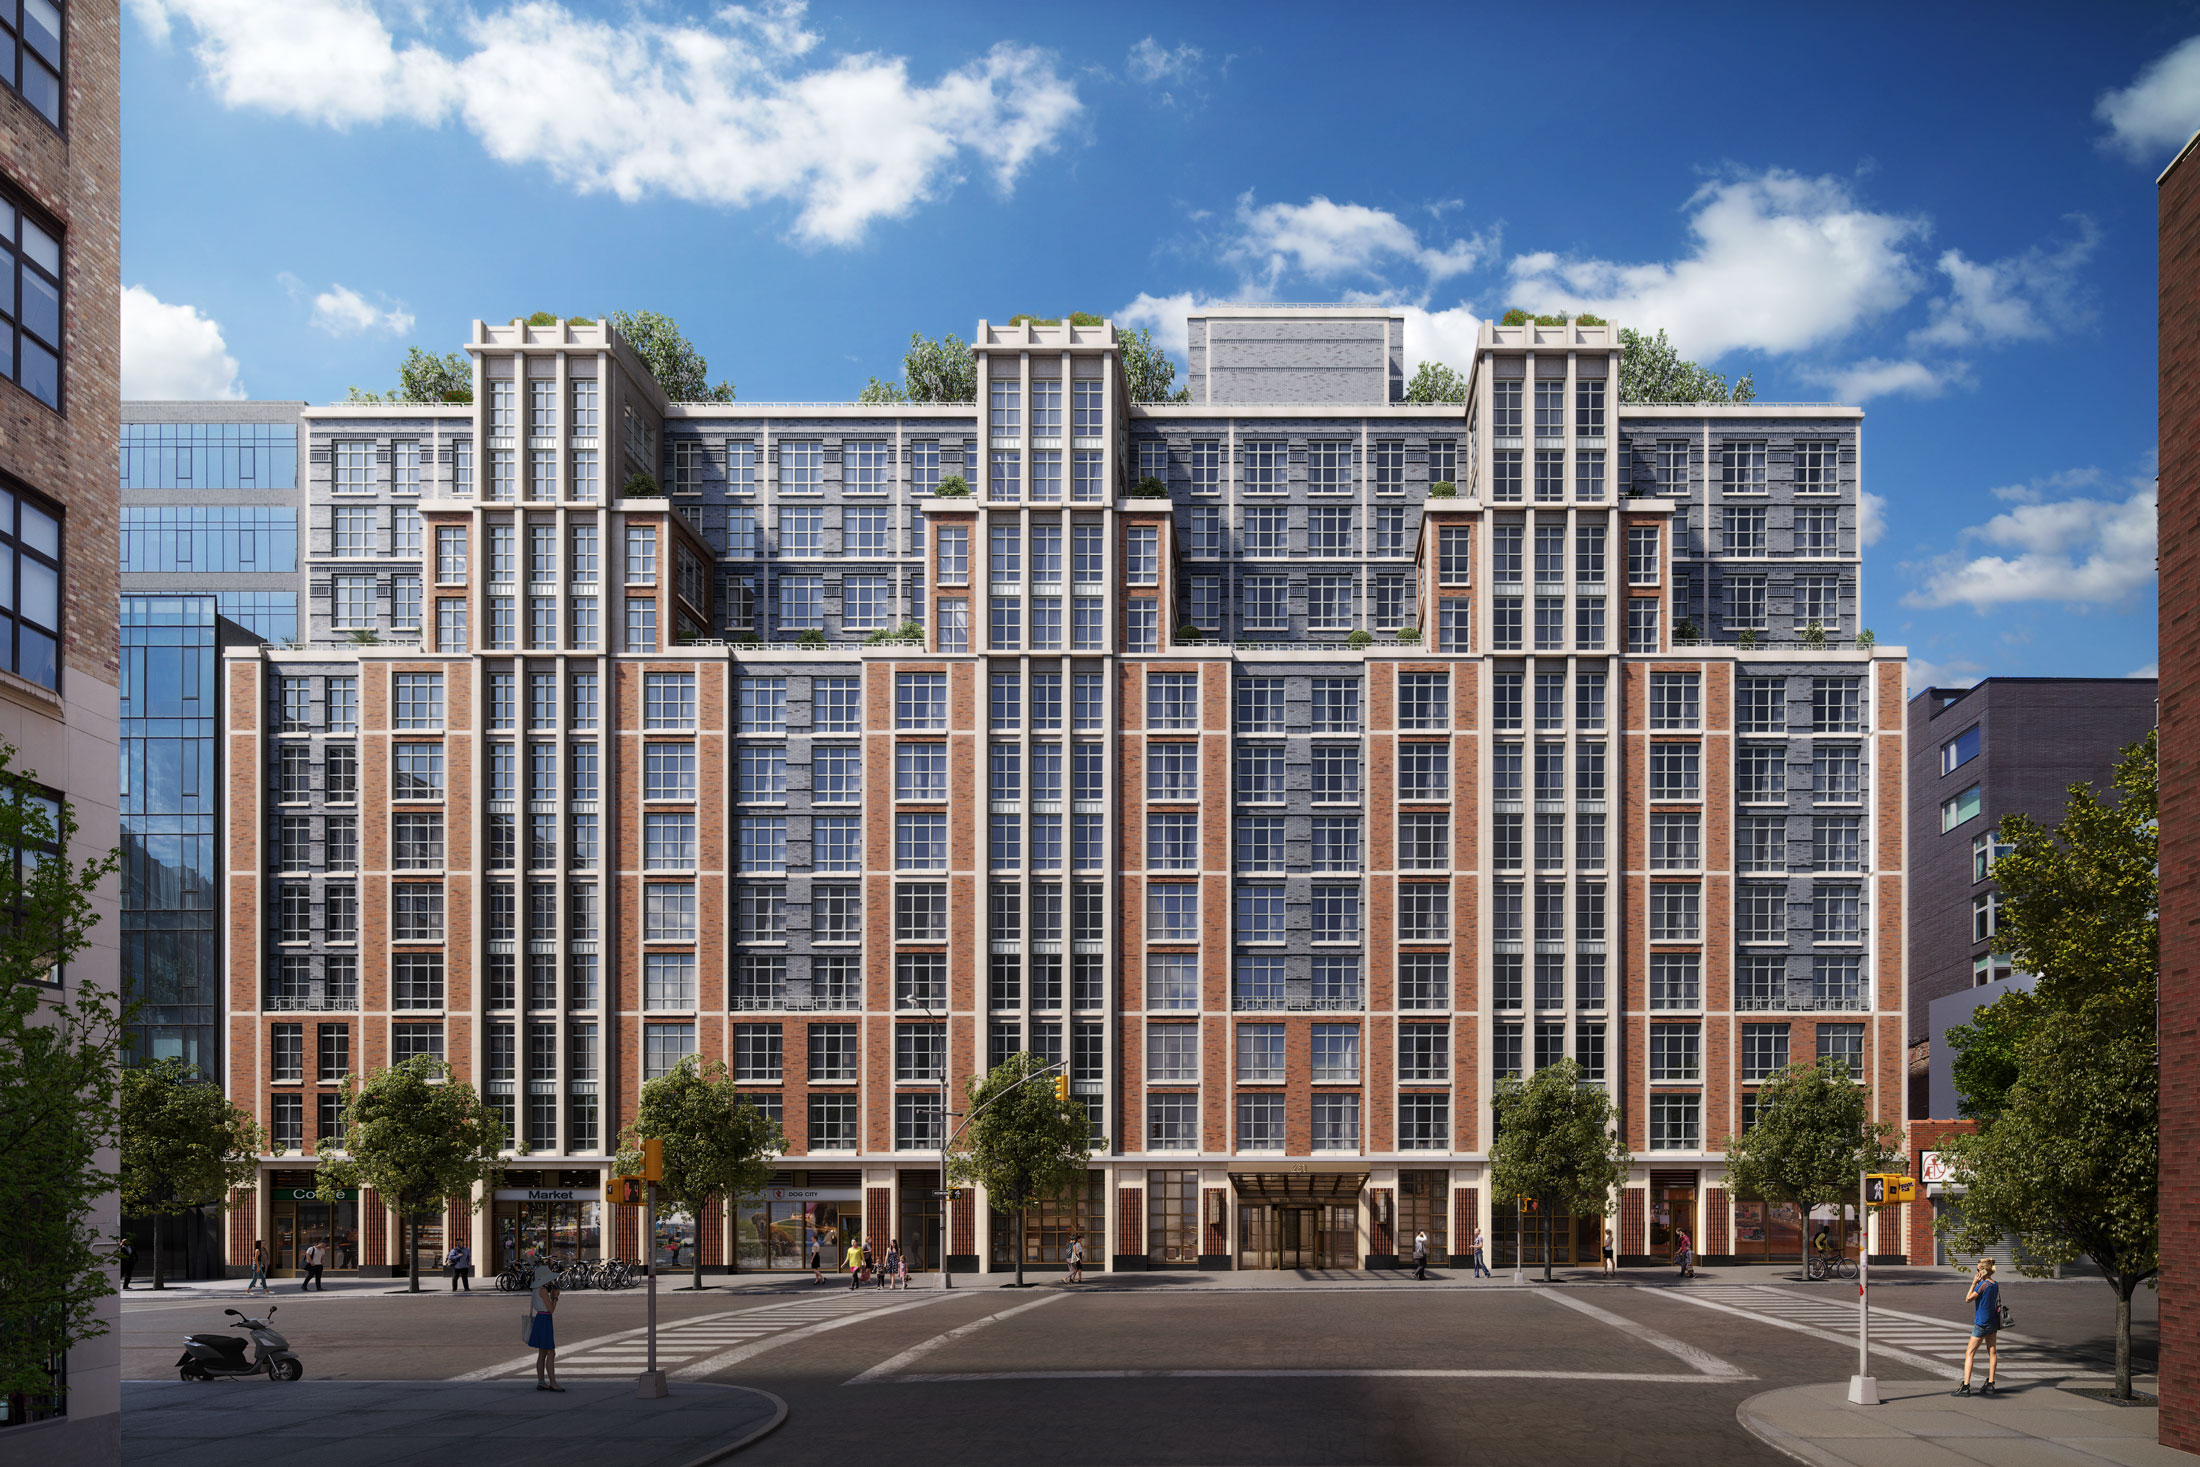 Architectural Rendering of the exterior of the 261 Hudson project located in West Soho, New York City